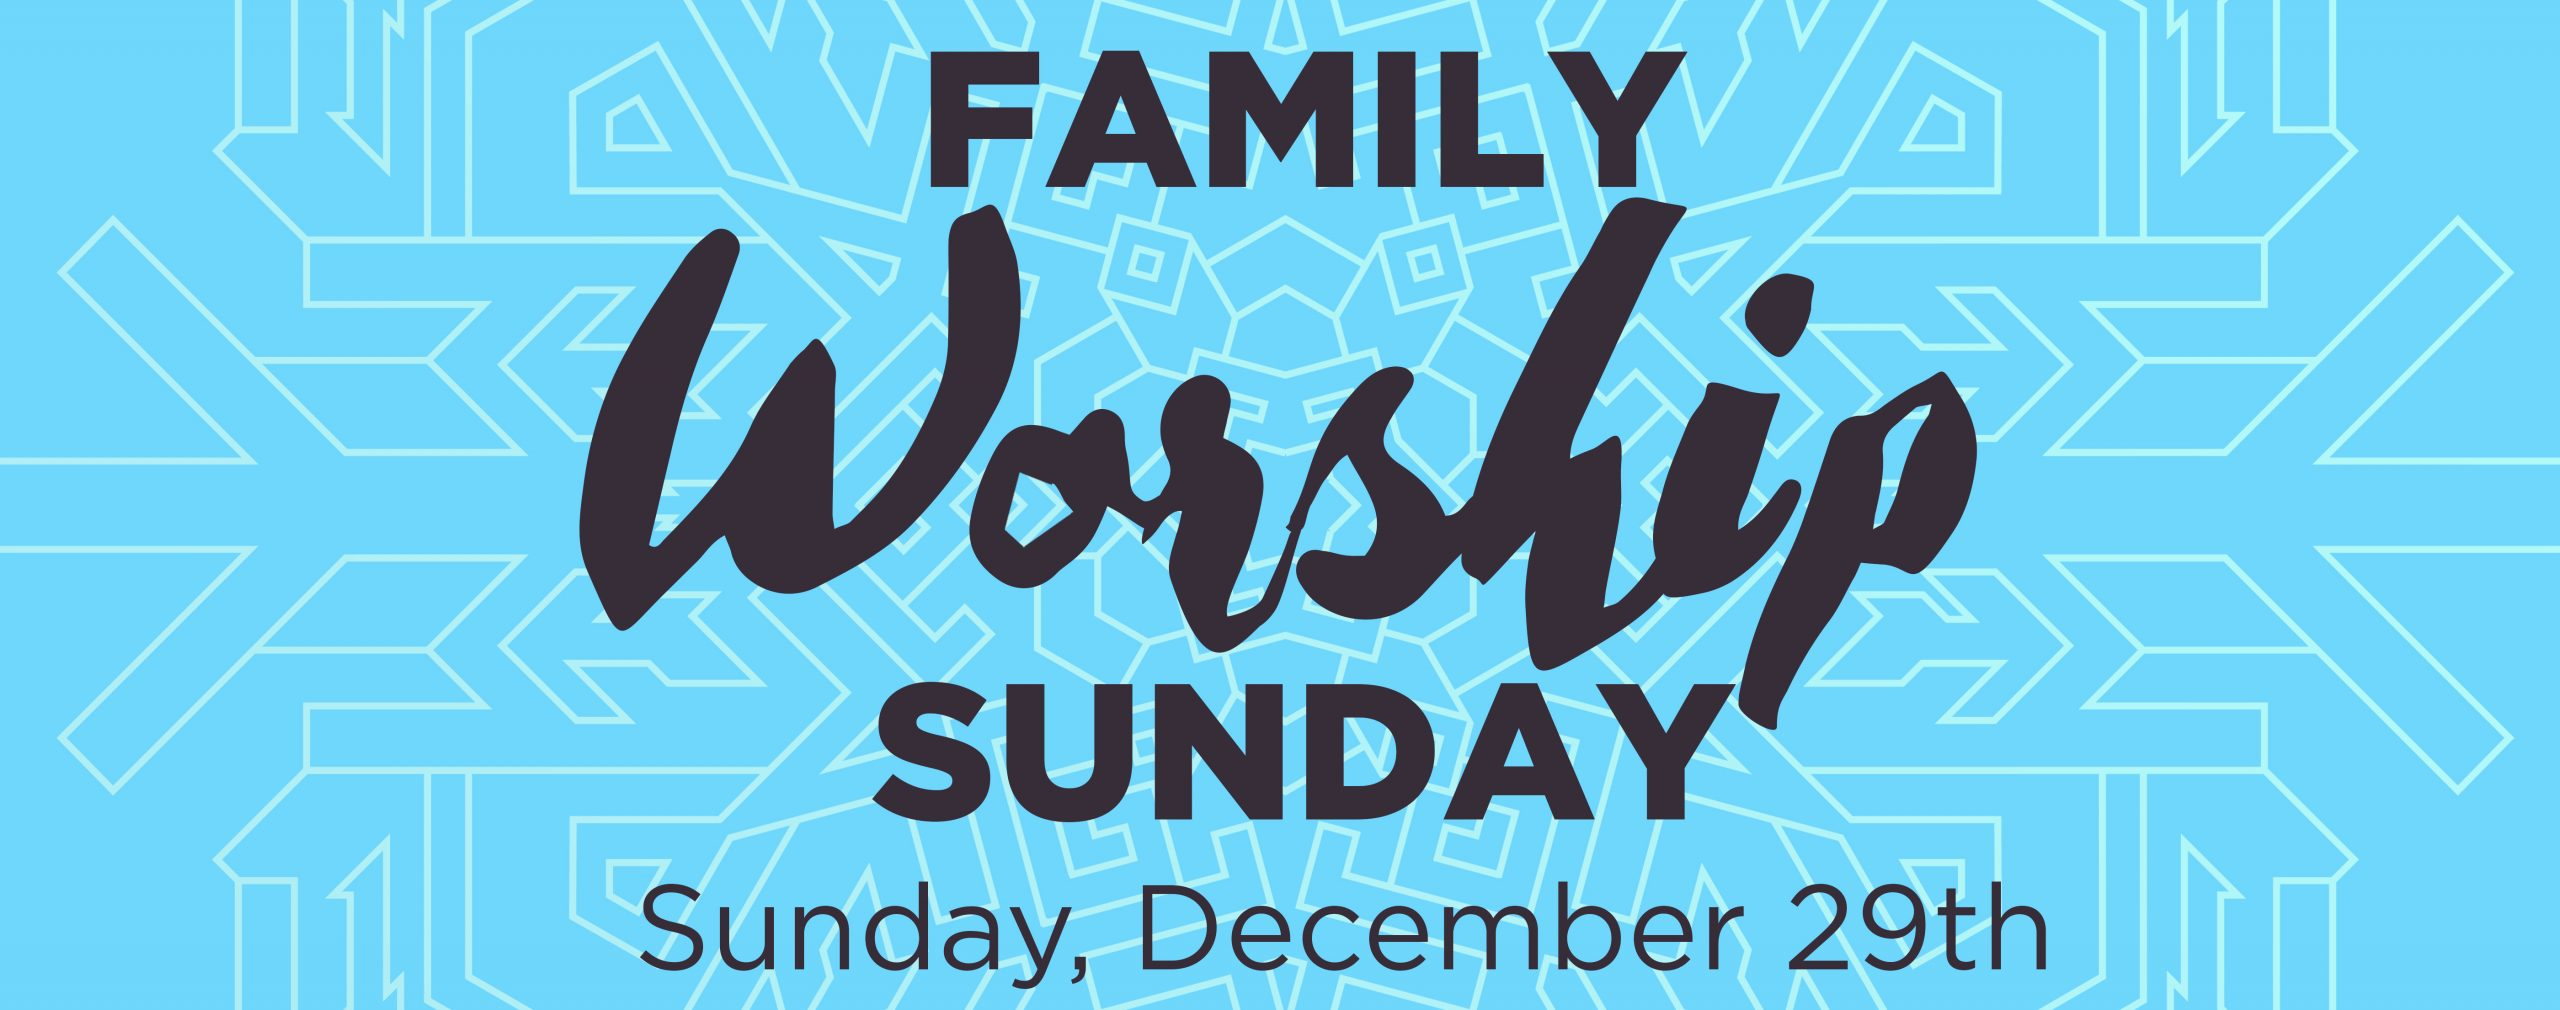 Family Worship Sunday 2019 Web